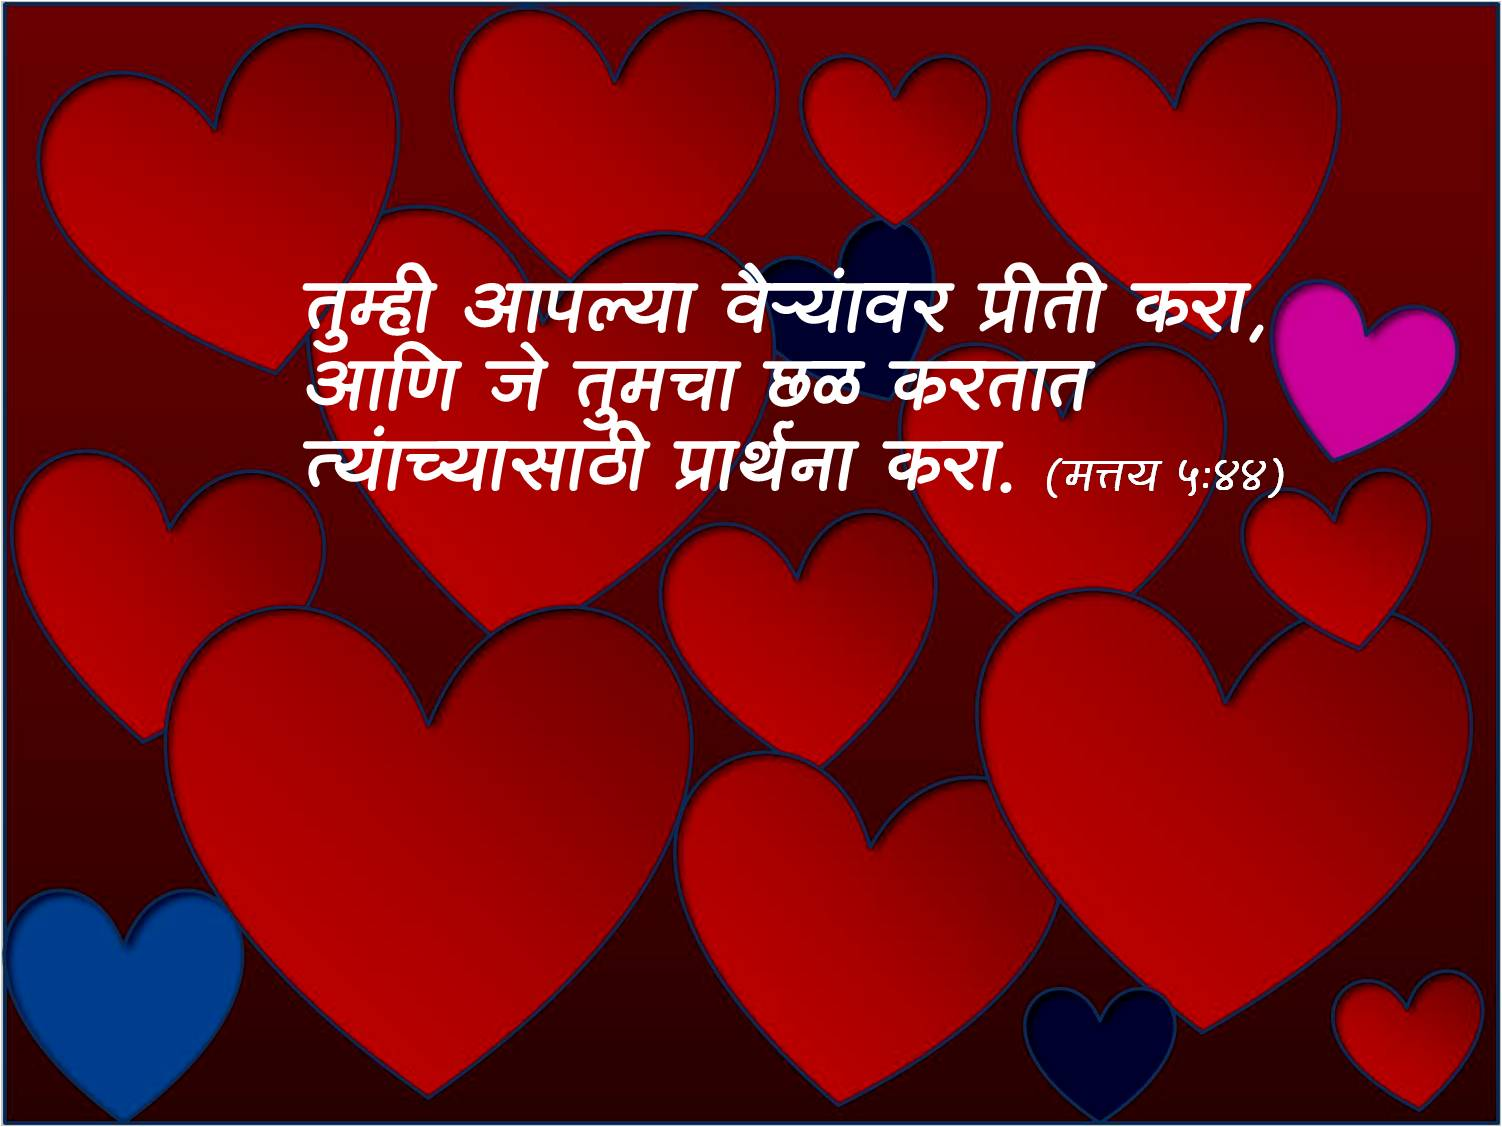 Marathi Bible Wallpapers For 2012 Valentine S Day Nava Karar